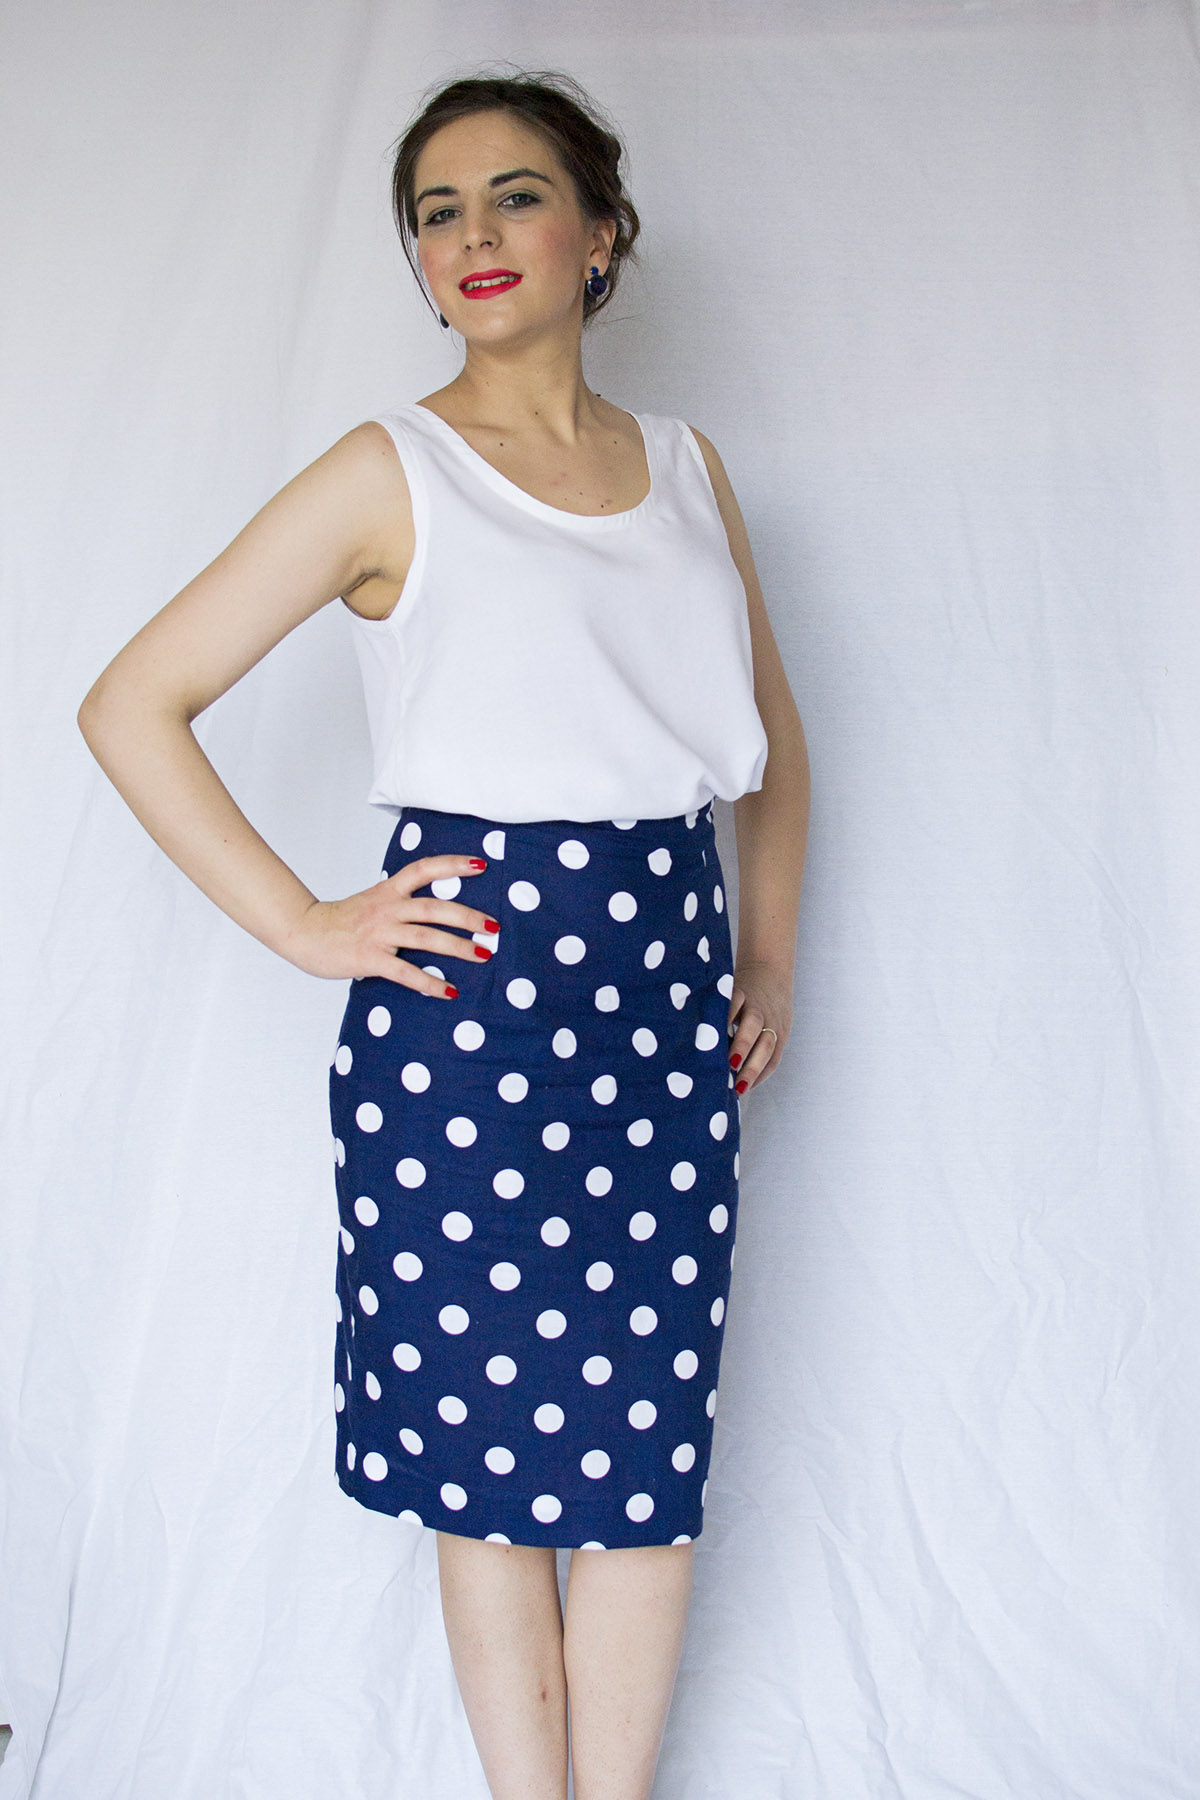 A navy style handmade outfit